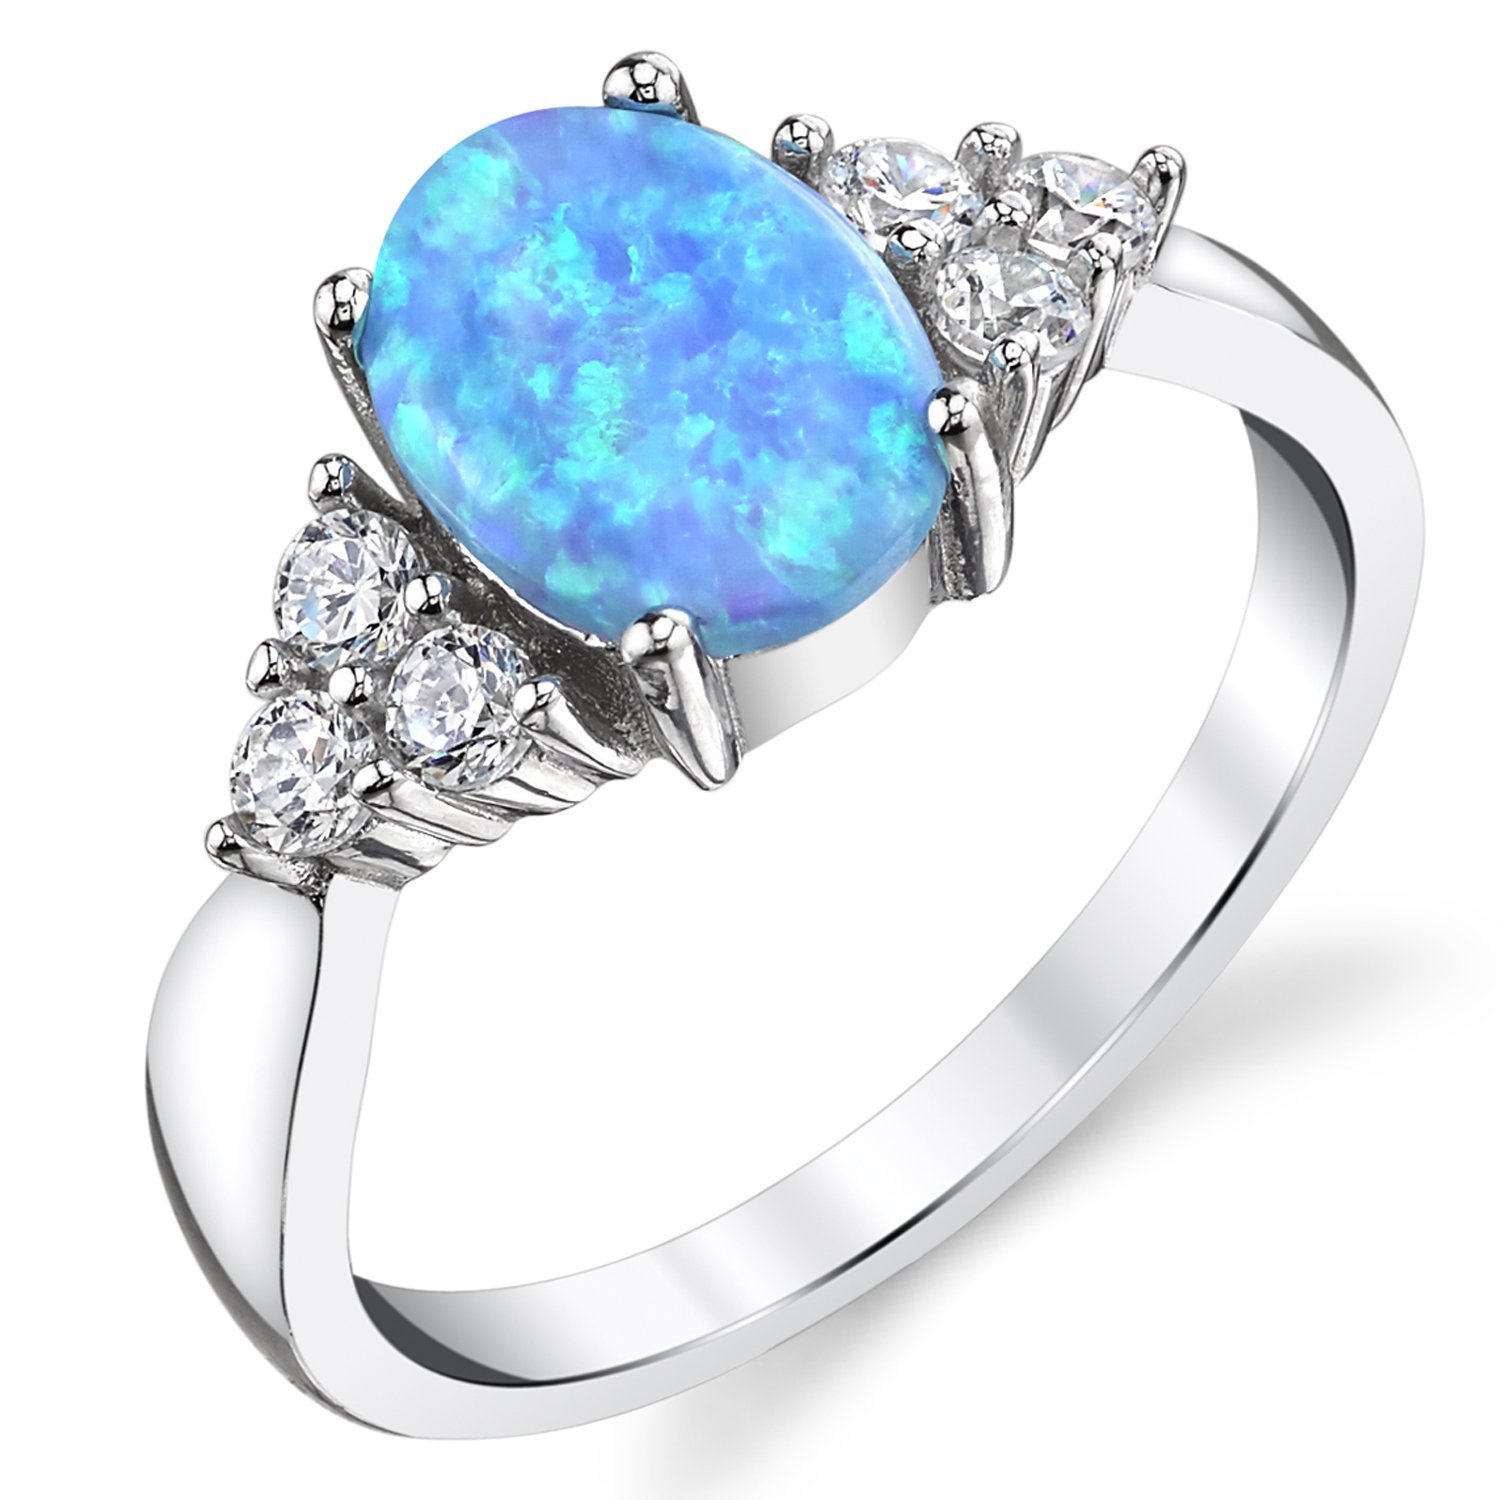 Metal Masters Co. Oval Shape Blue Simulated Opal Ring Sterling Silver with Cubic Zirconia Size 9 SILRXXX269